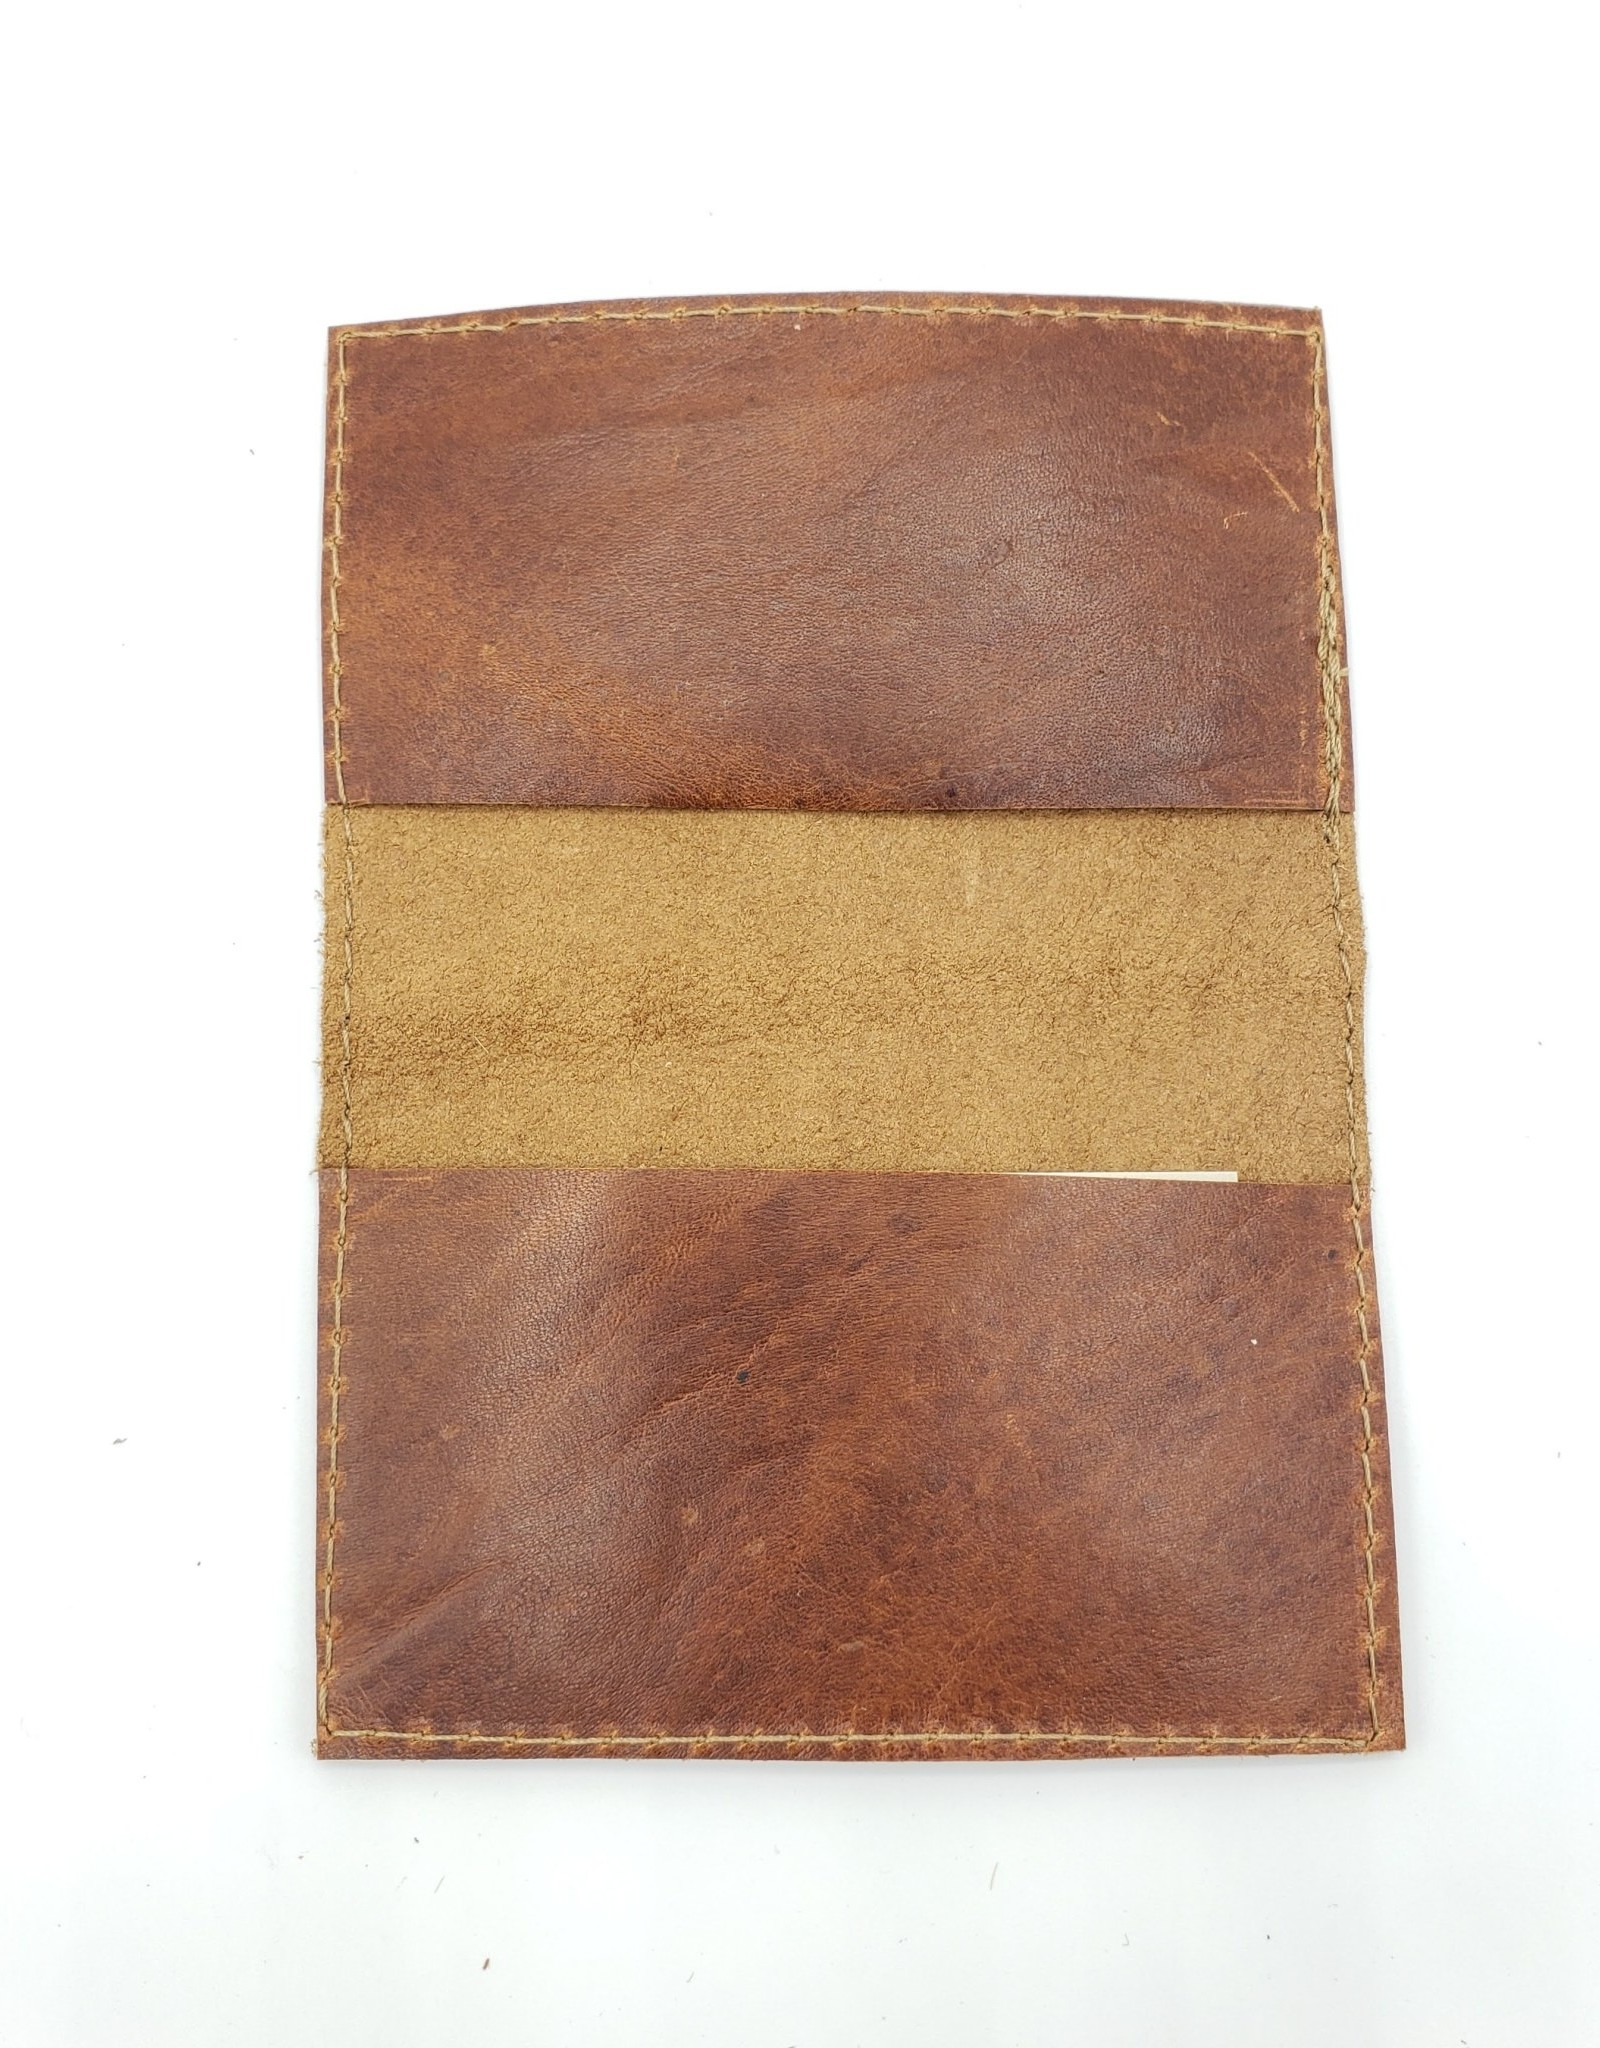 In Blue Handmade Compass - Leather Fold Over Card Wallet